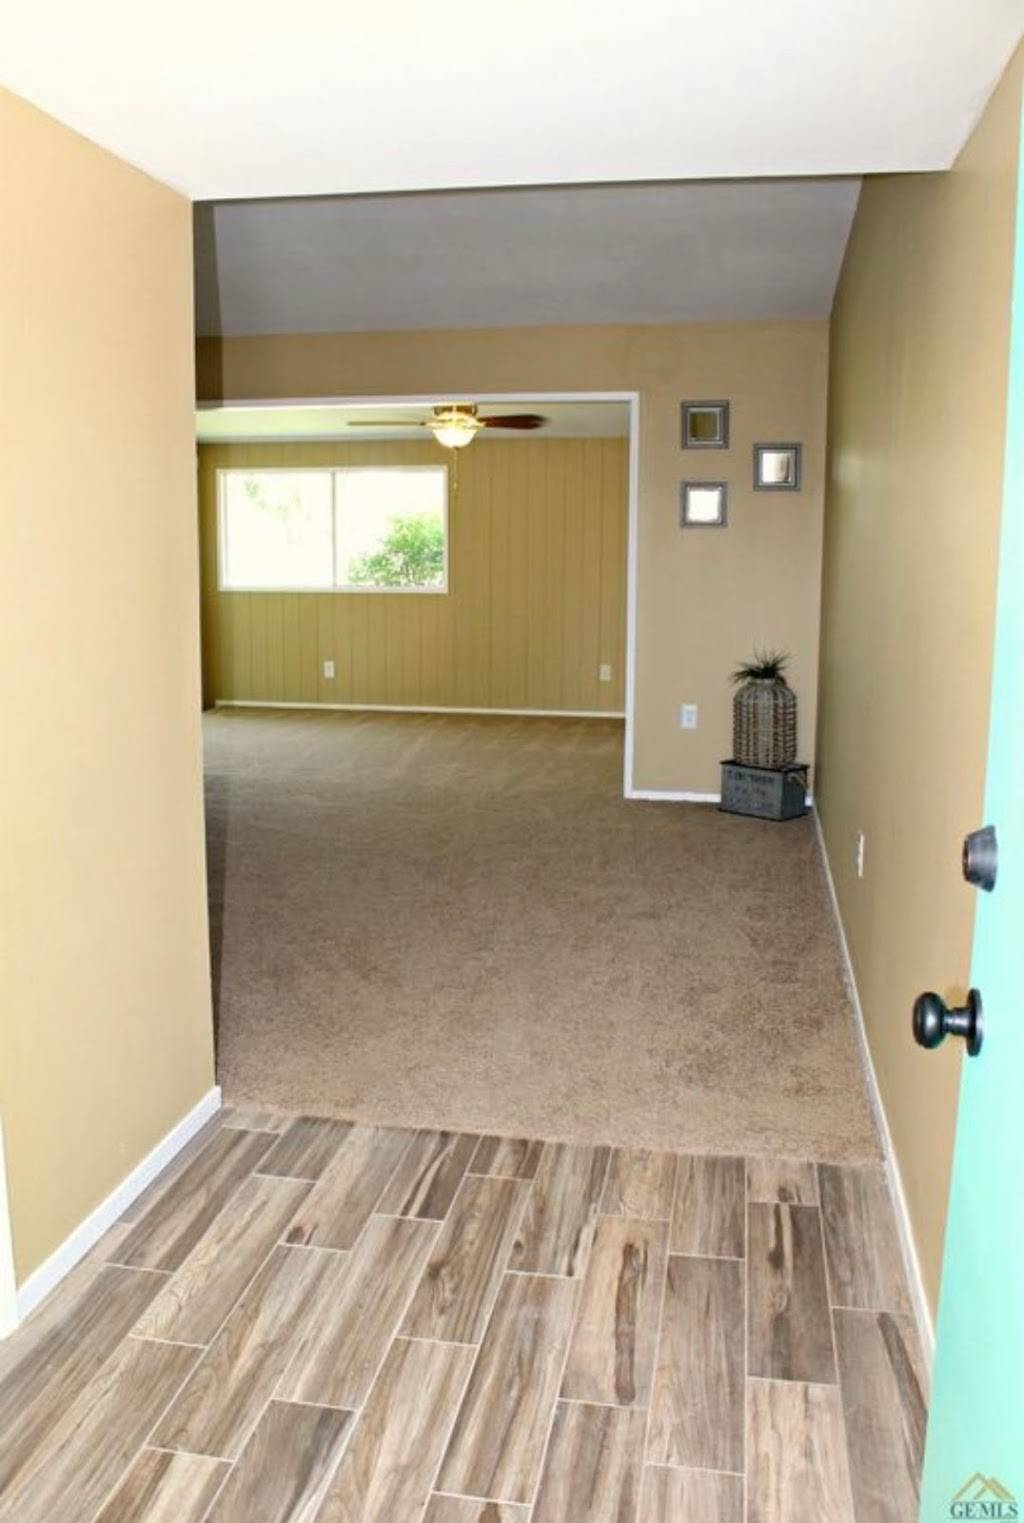 Refined Home Resolutions, LLC - real estate agency  | Photo 3 of 10 | Address: 405 Thunder Gulch Dr, Bakersfield, CA 93307, USA | Phone: (661) 220-7777